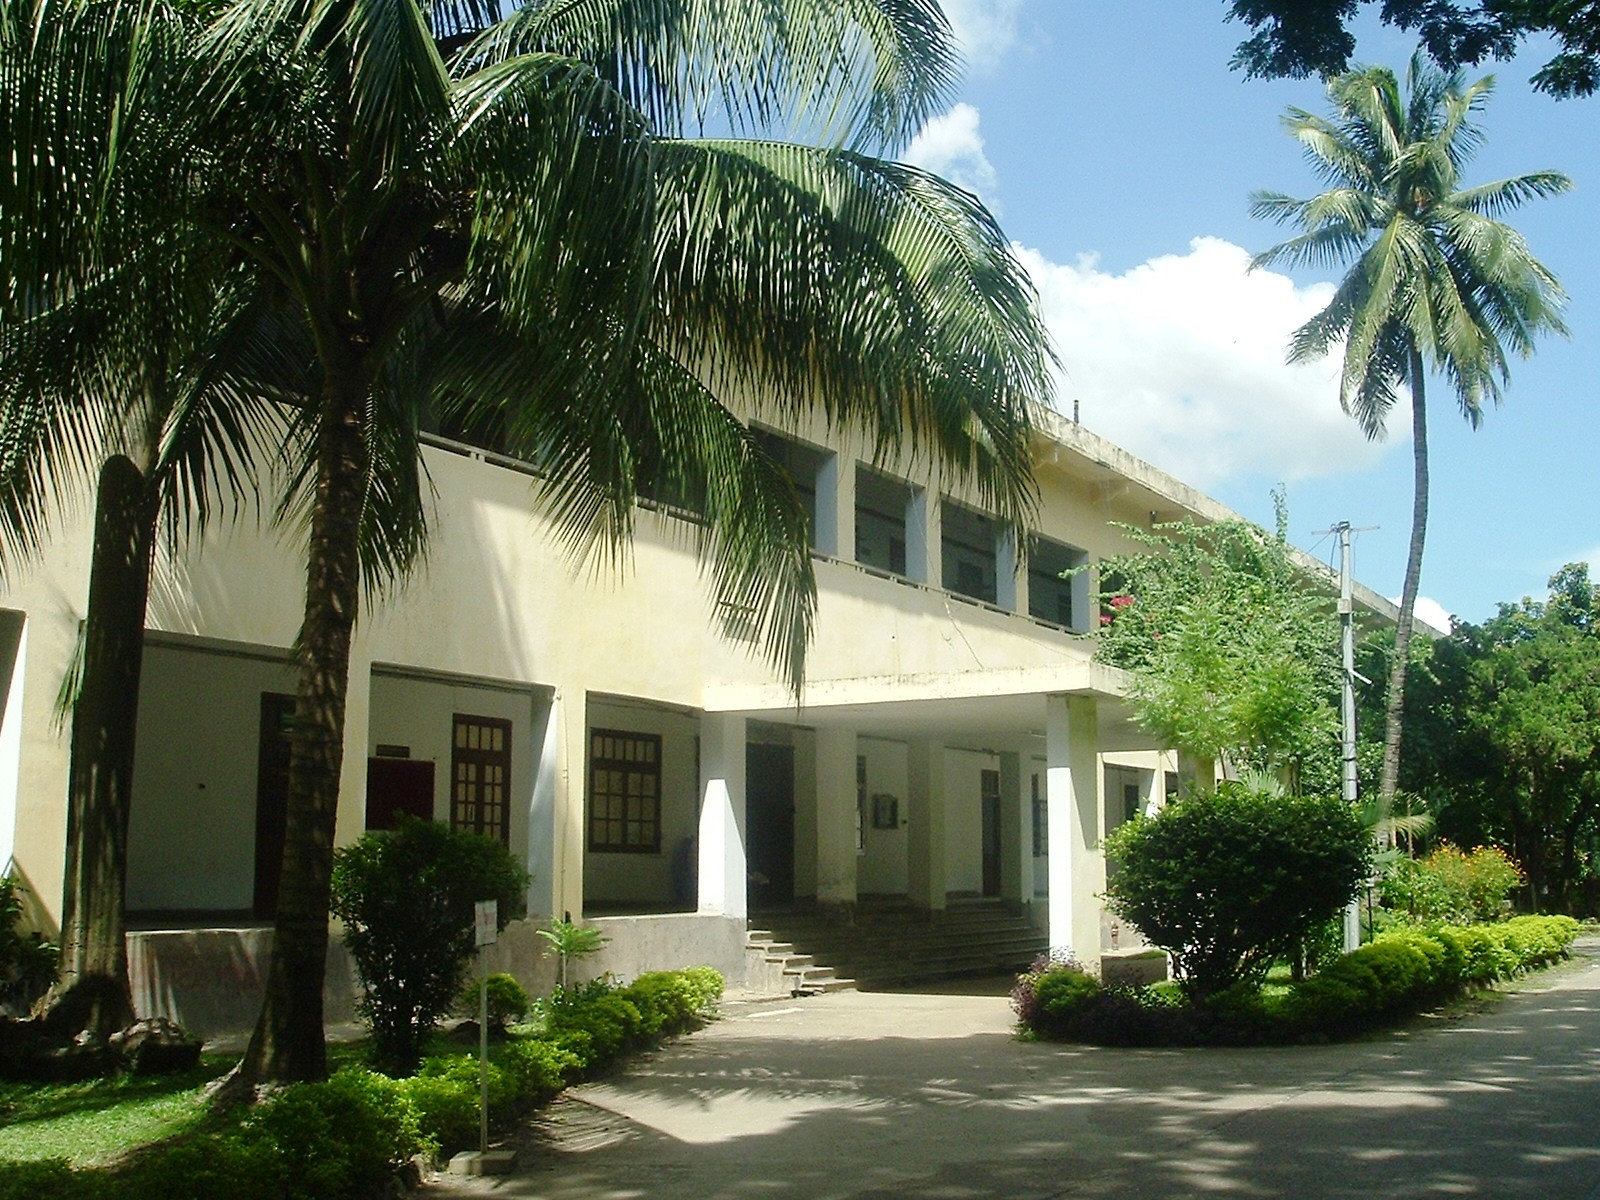 Old Academic Building